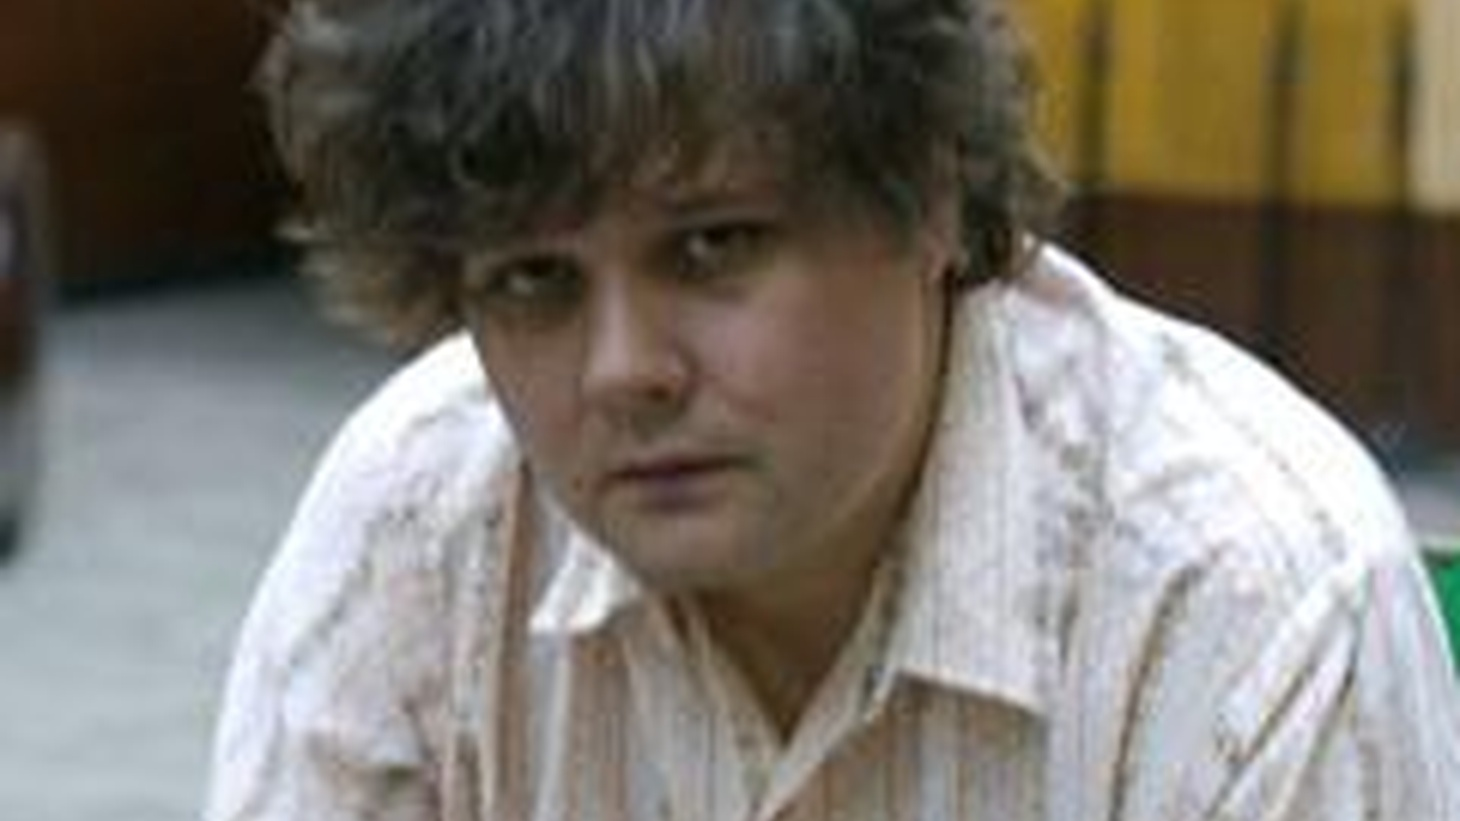 Canadian singer Ron Sexsmith is a gifted songwriter and one of my very favorites. His distinctive voice gives way to his ease of lyrics and melodic style...